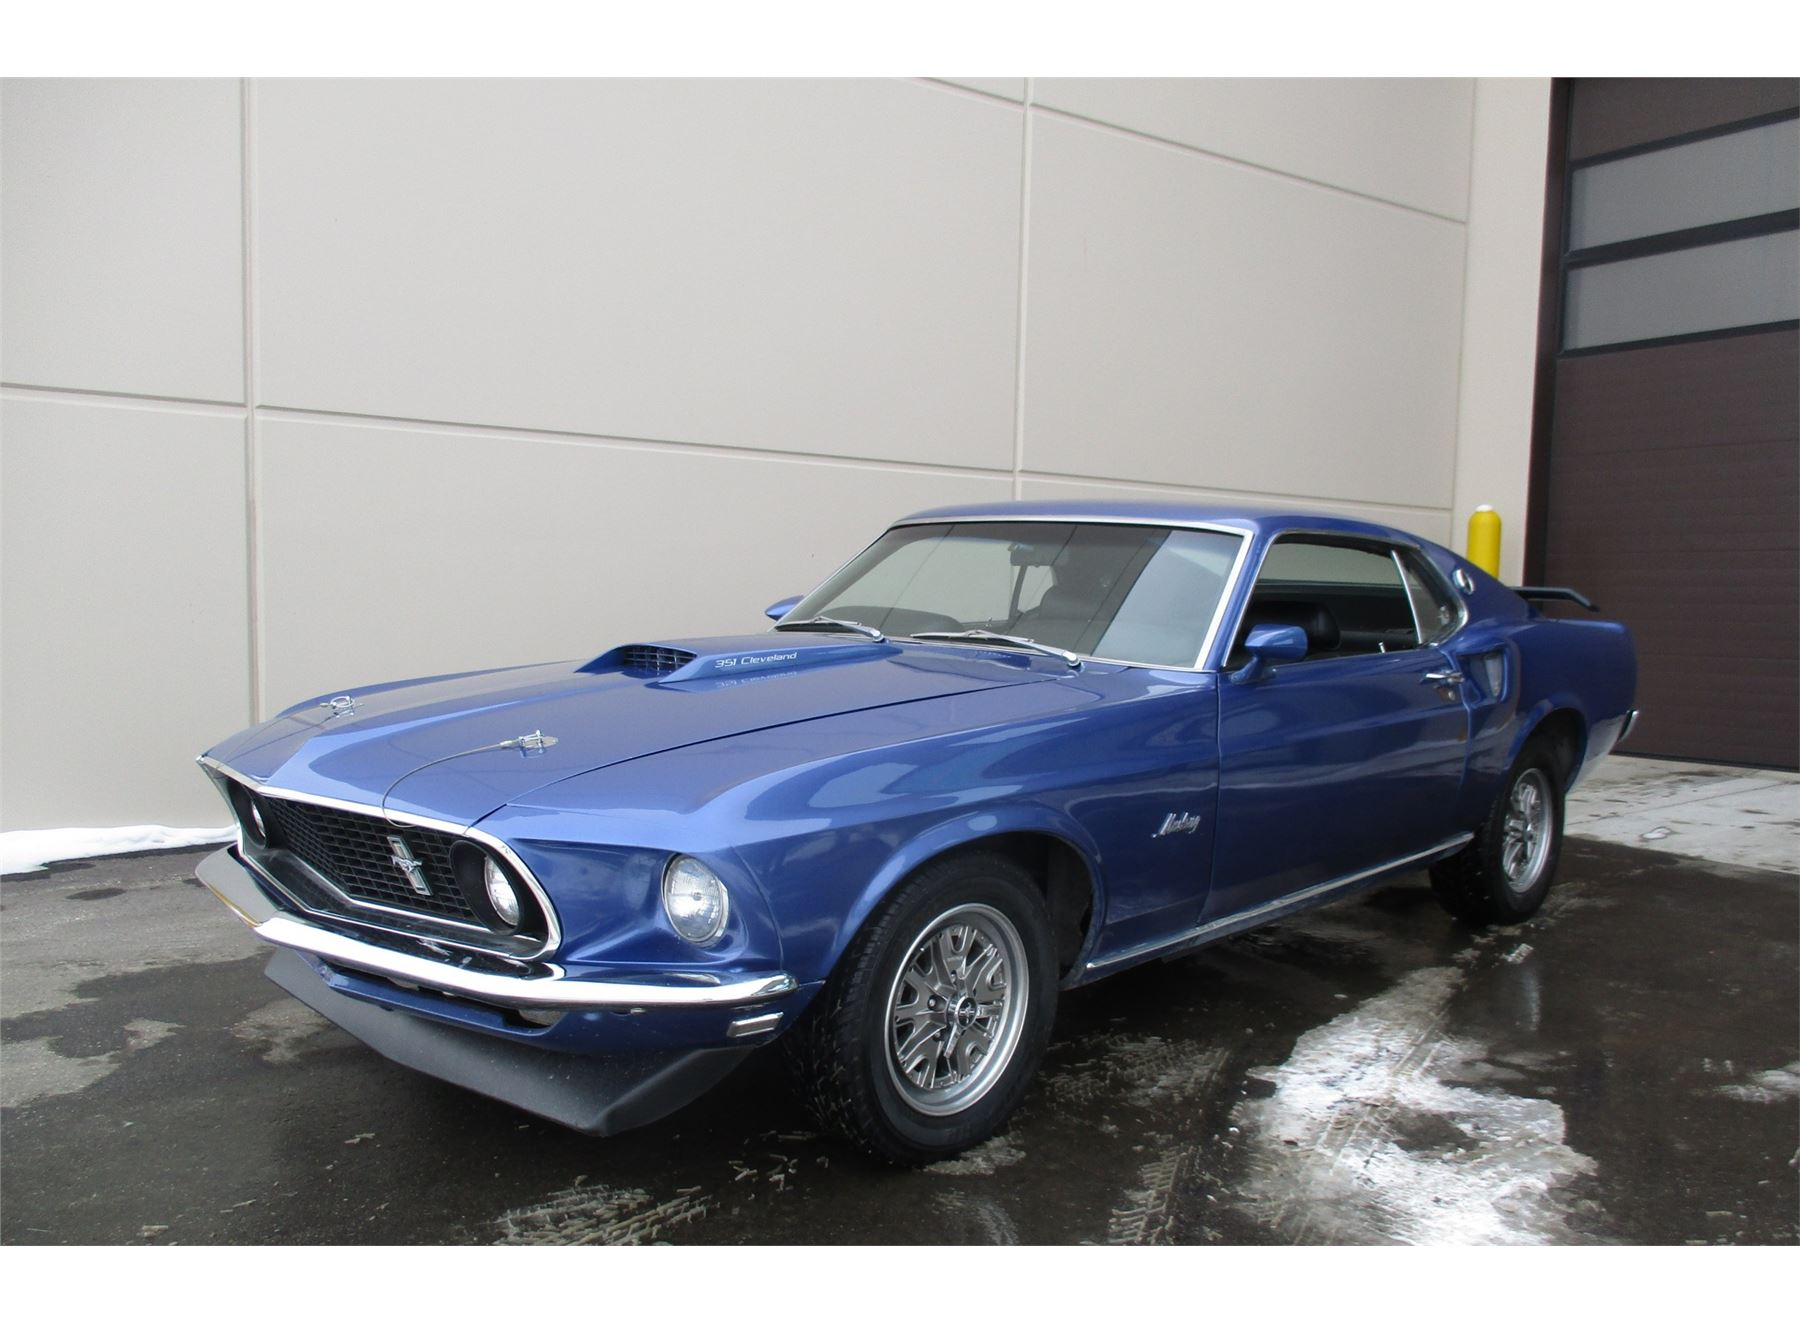 Friday Night 1969 Ford Mustang Fastback Mach 1 Image